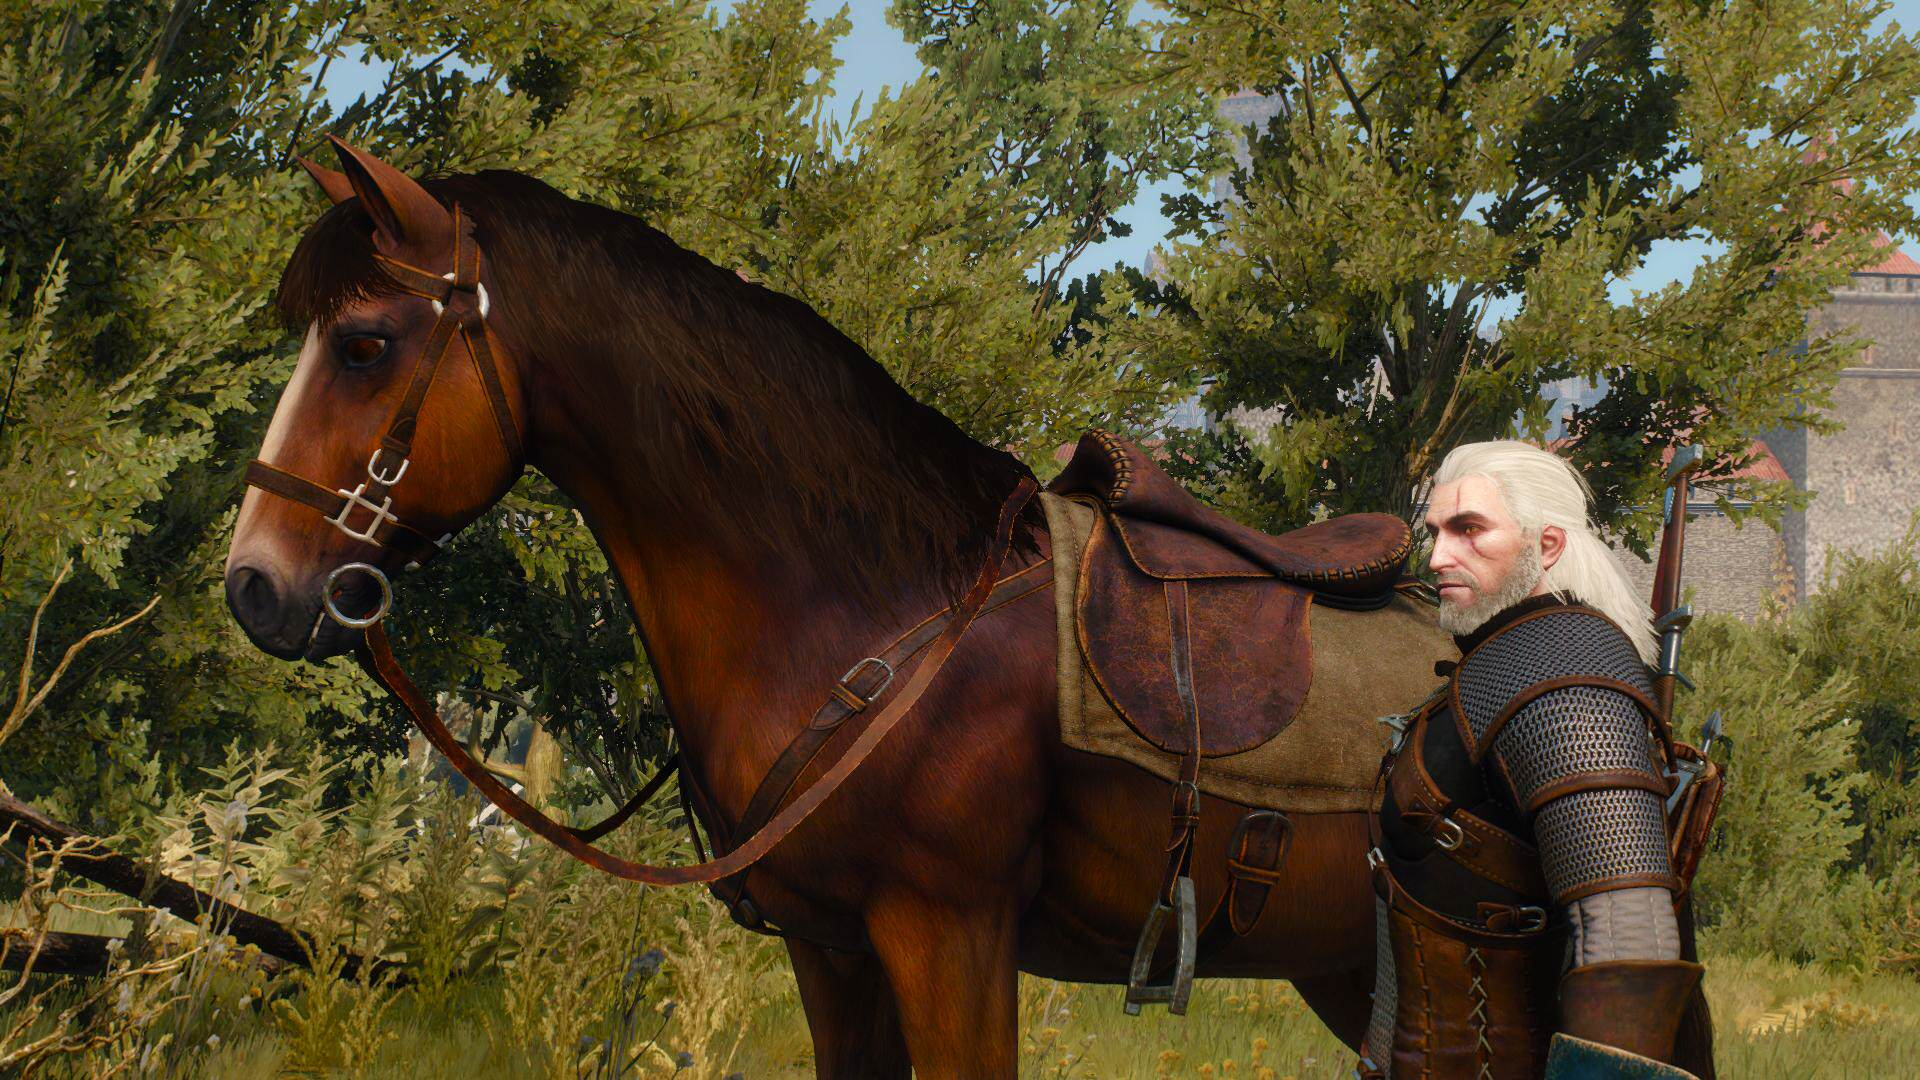 This Witcher 3 April Fools Prank Is Incredible the witcher 3 wild hunt nvidia hairworks horse